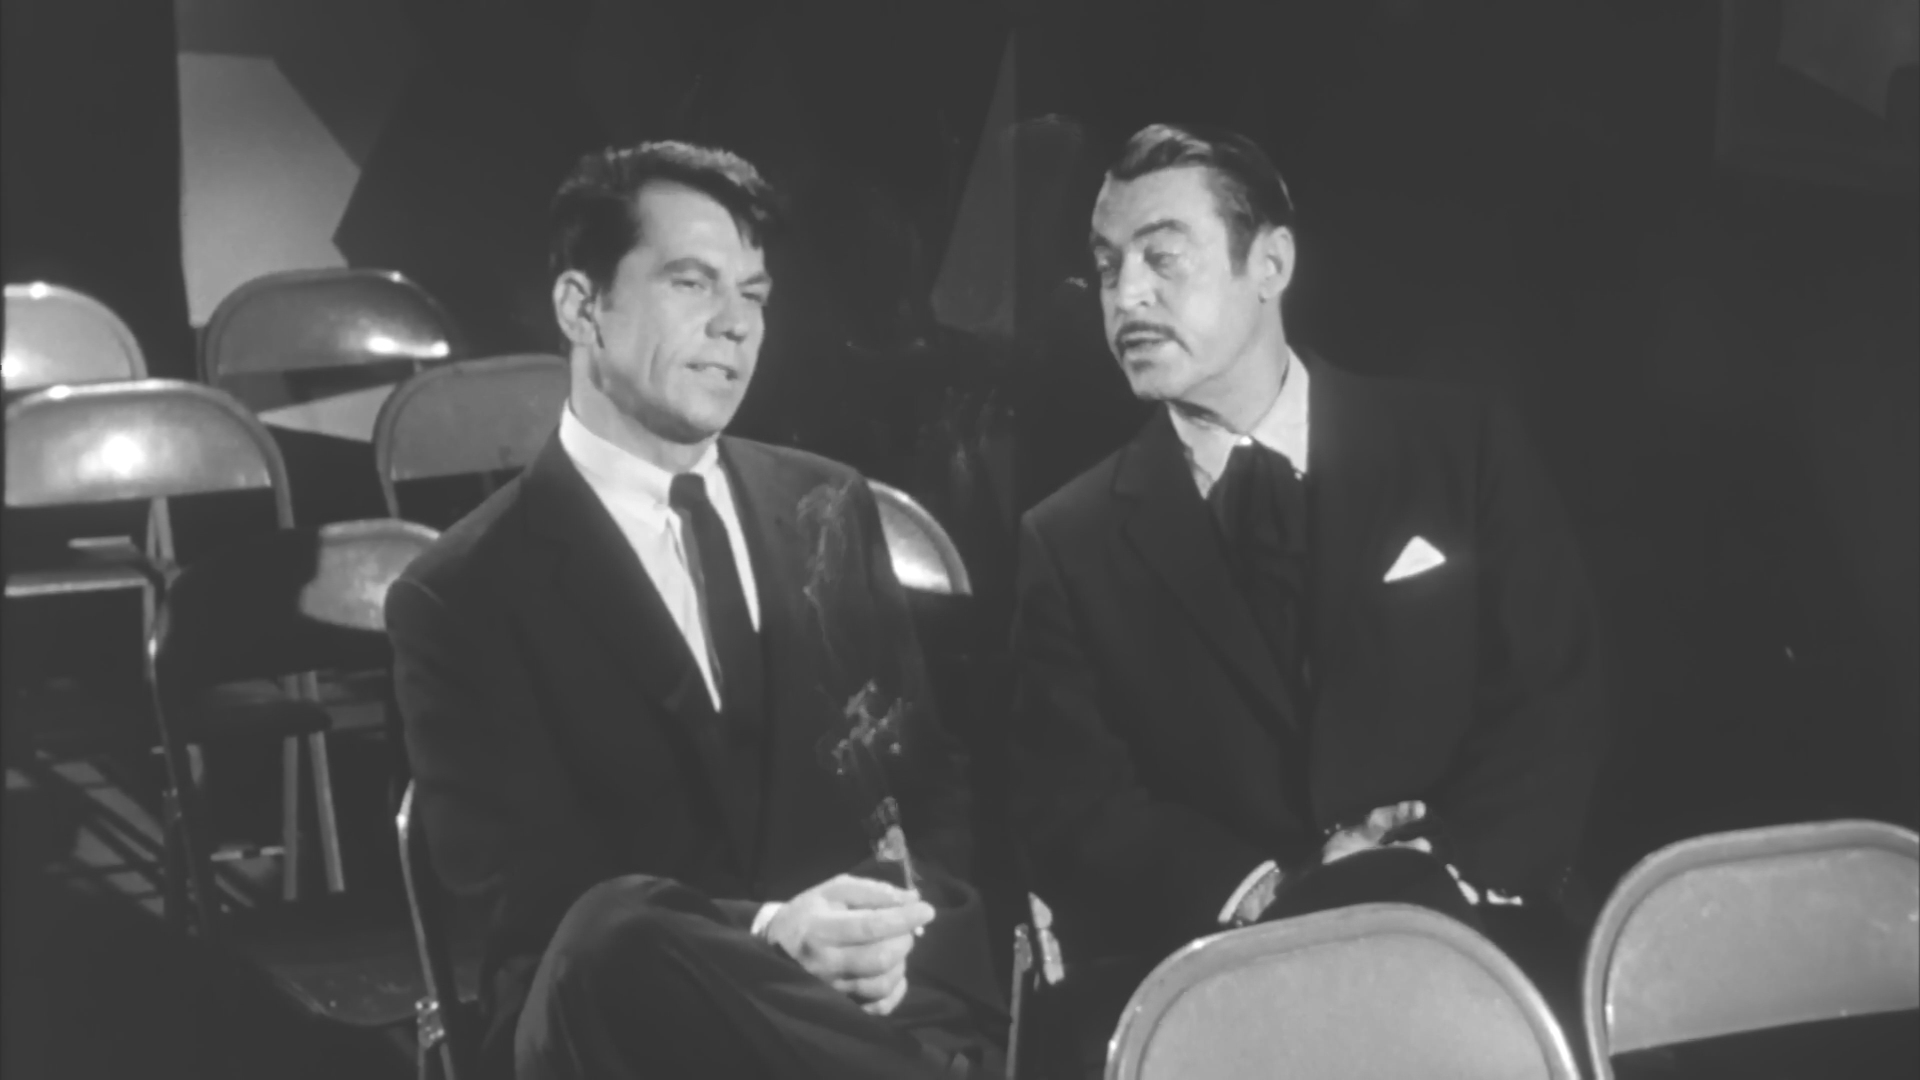 Chester Morris and Ron Randell in The She-Creature (1956)